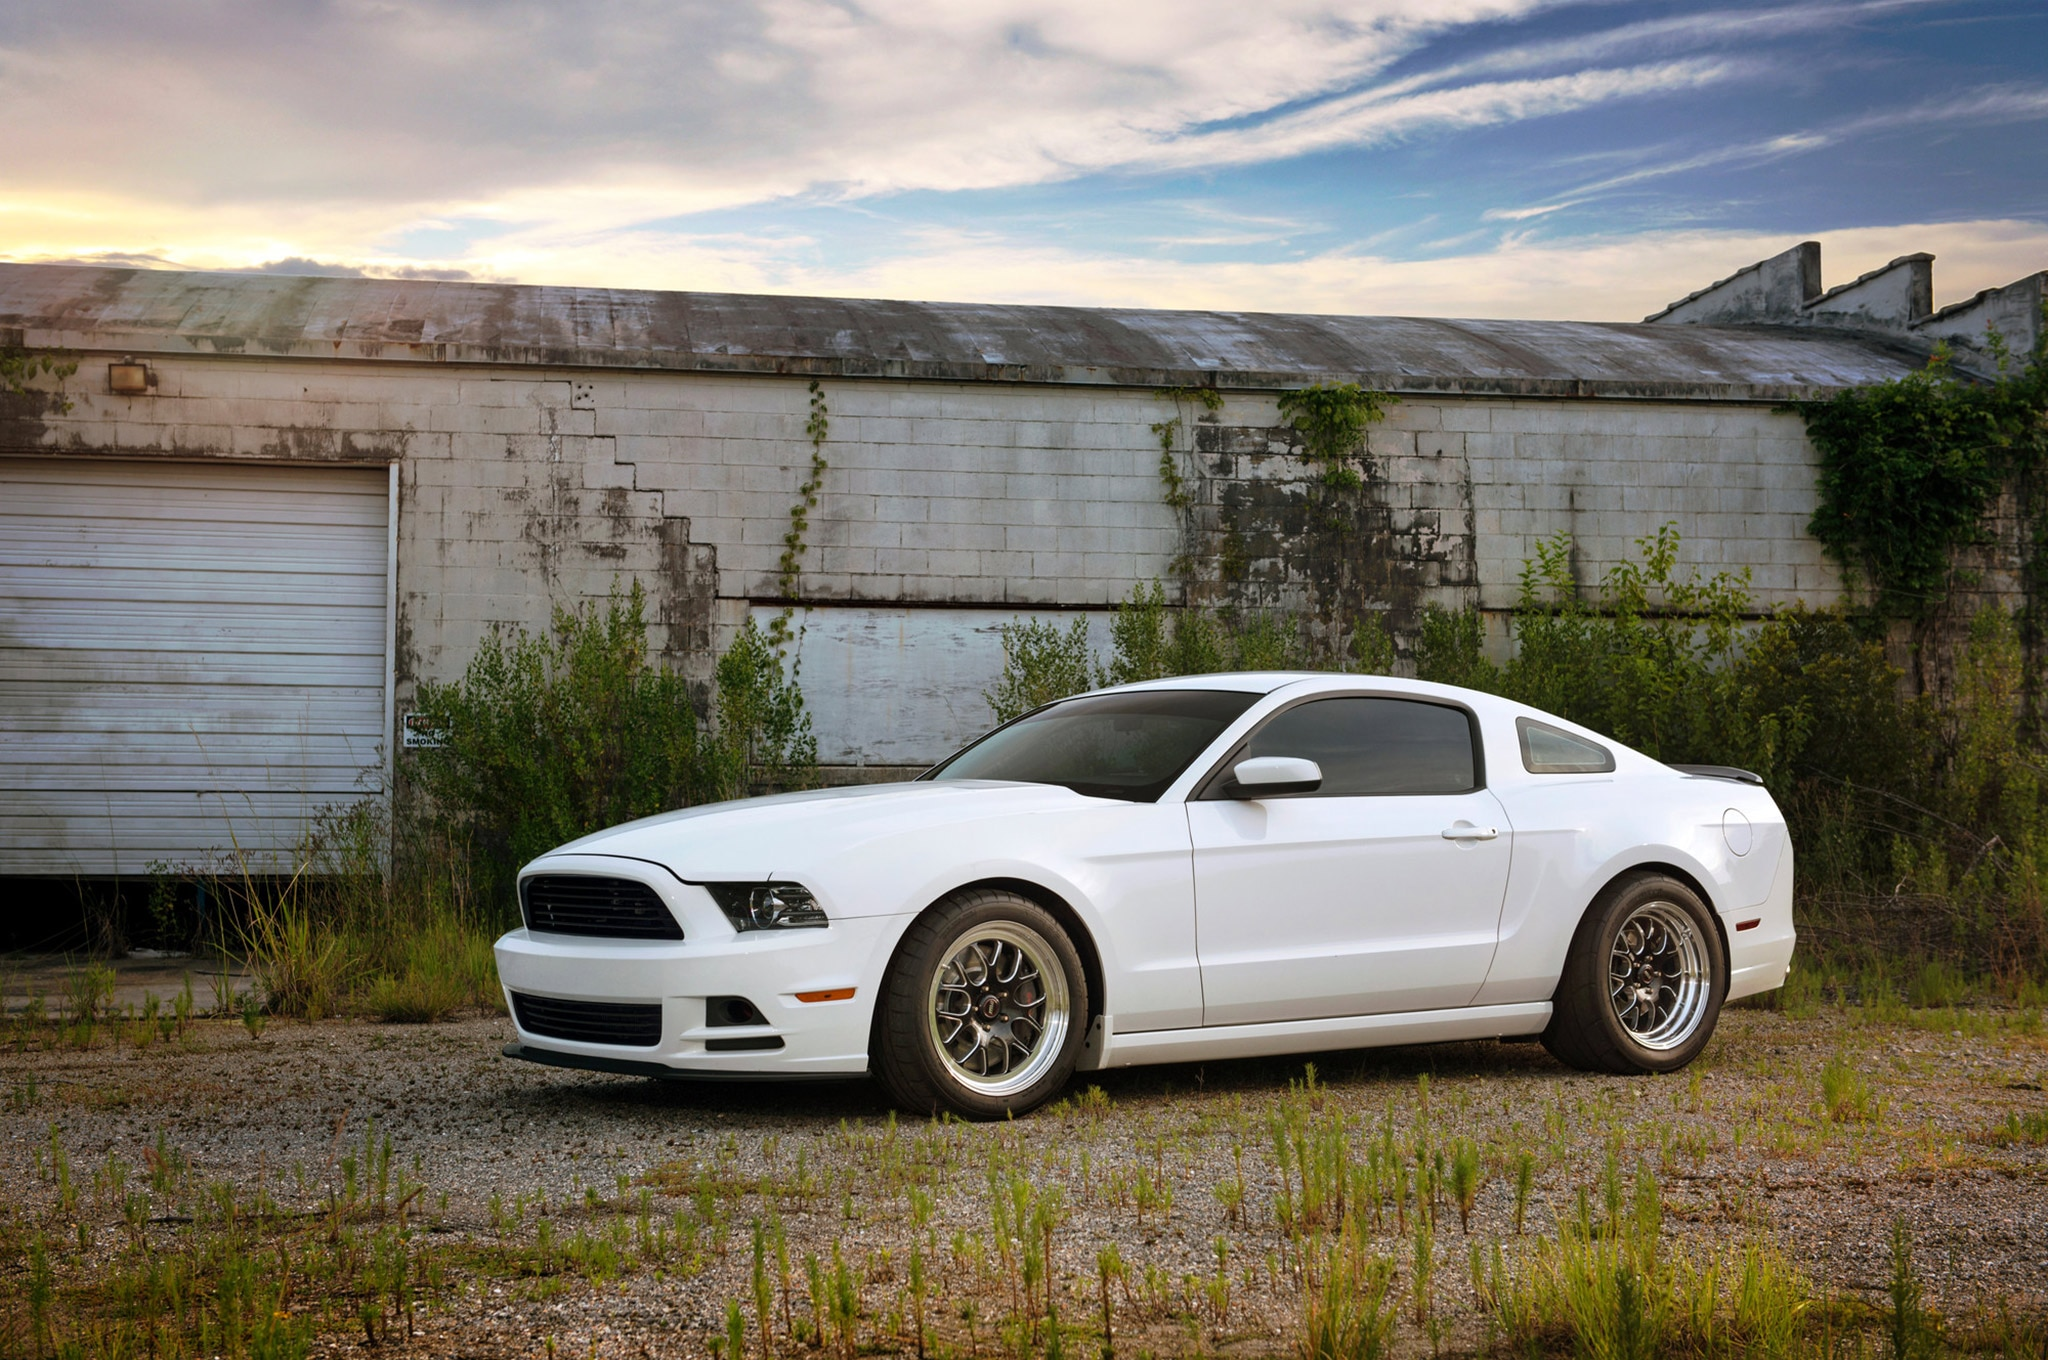 Big bad boss the 2013 ford mustang boss 302 with 1145 hp photo